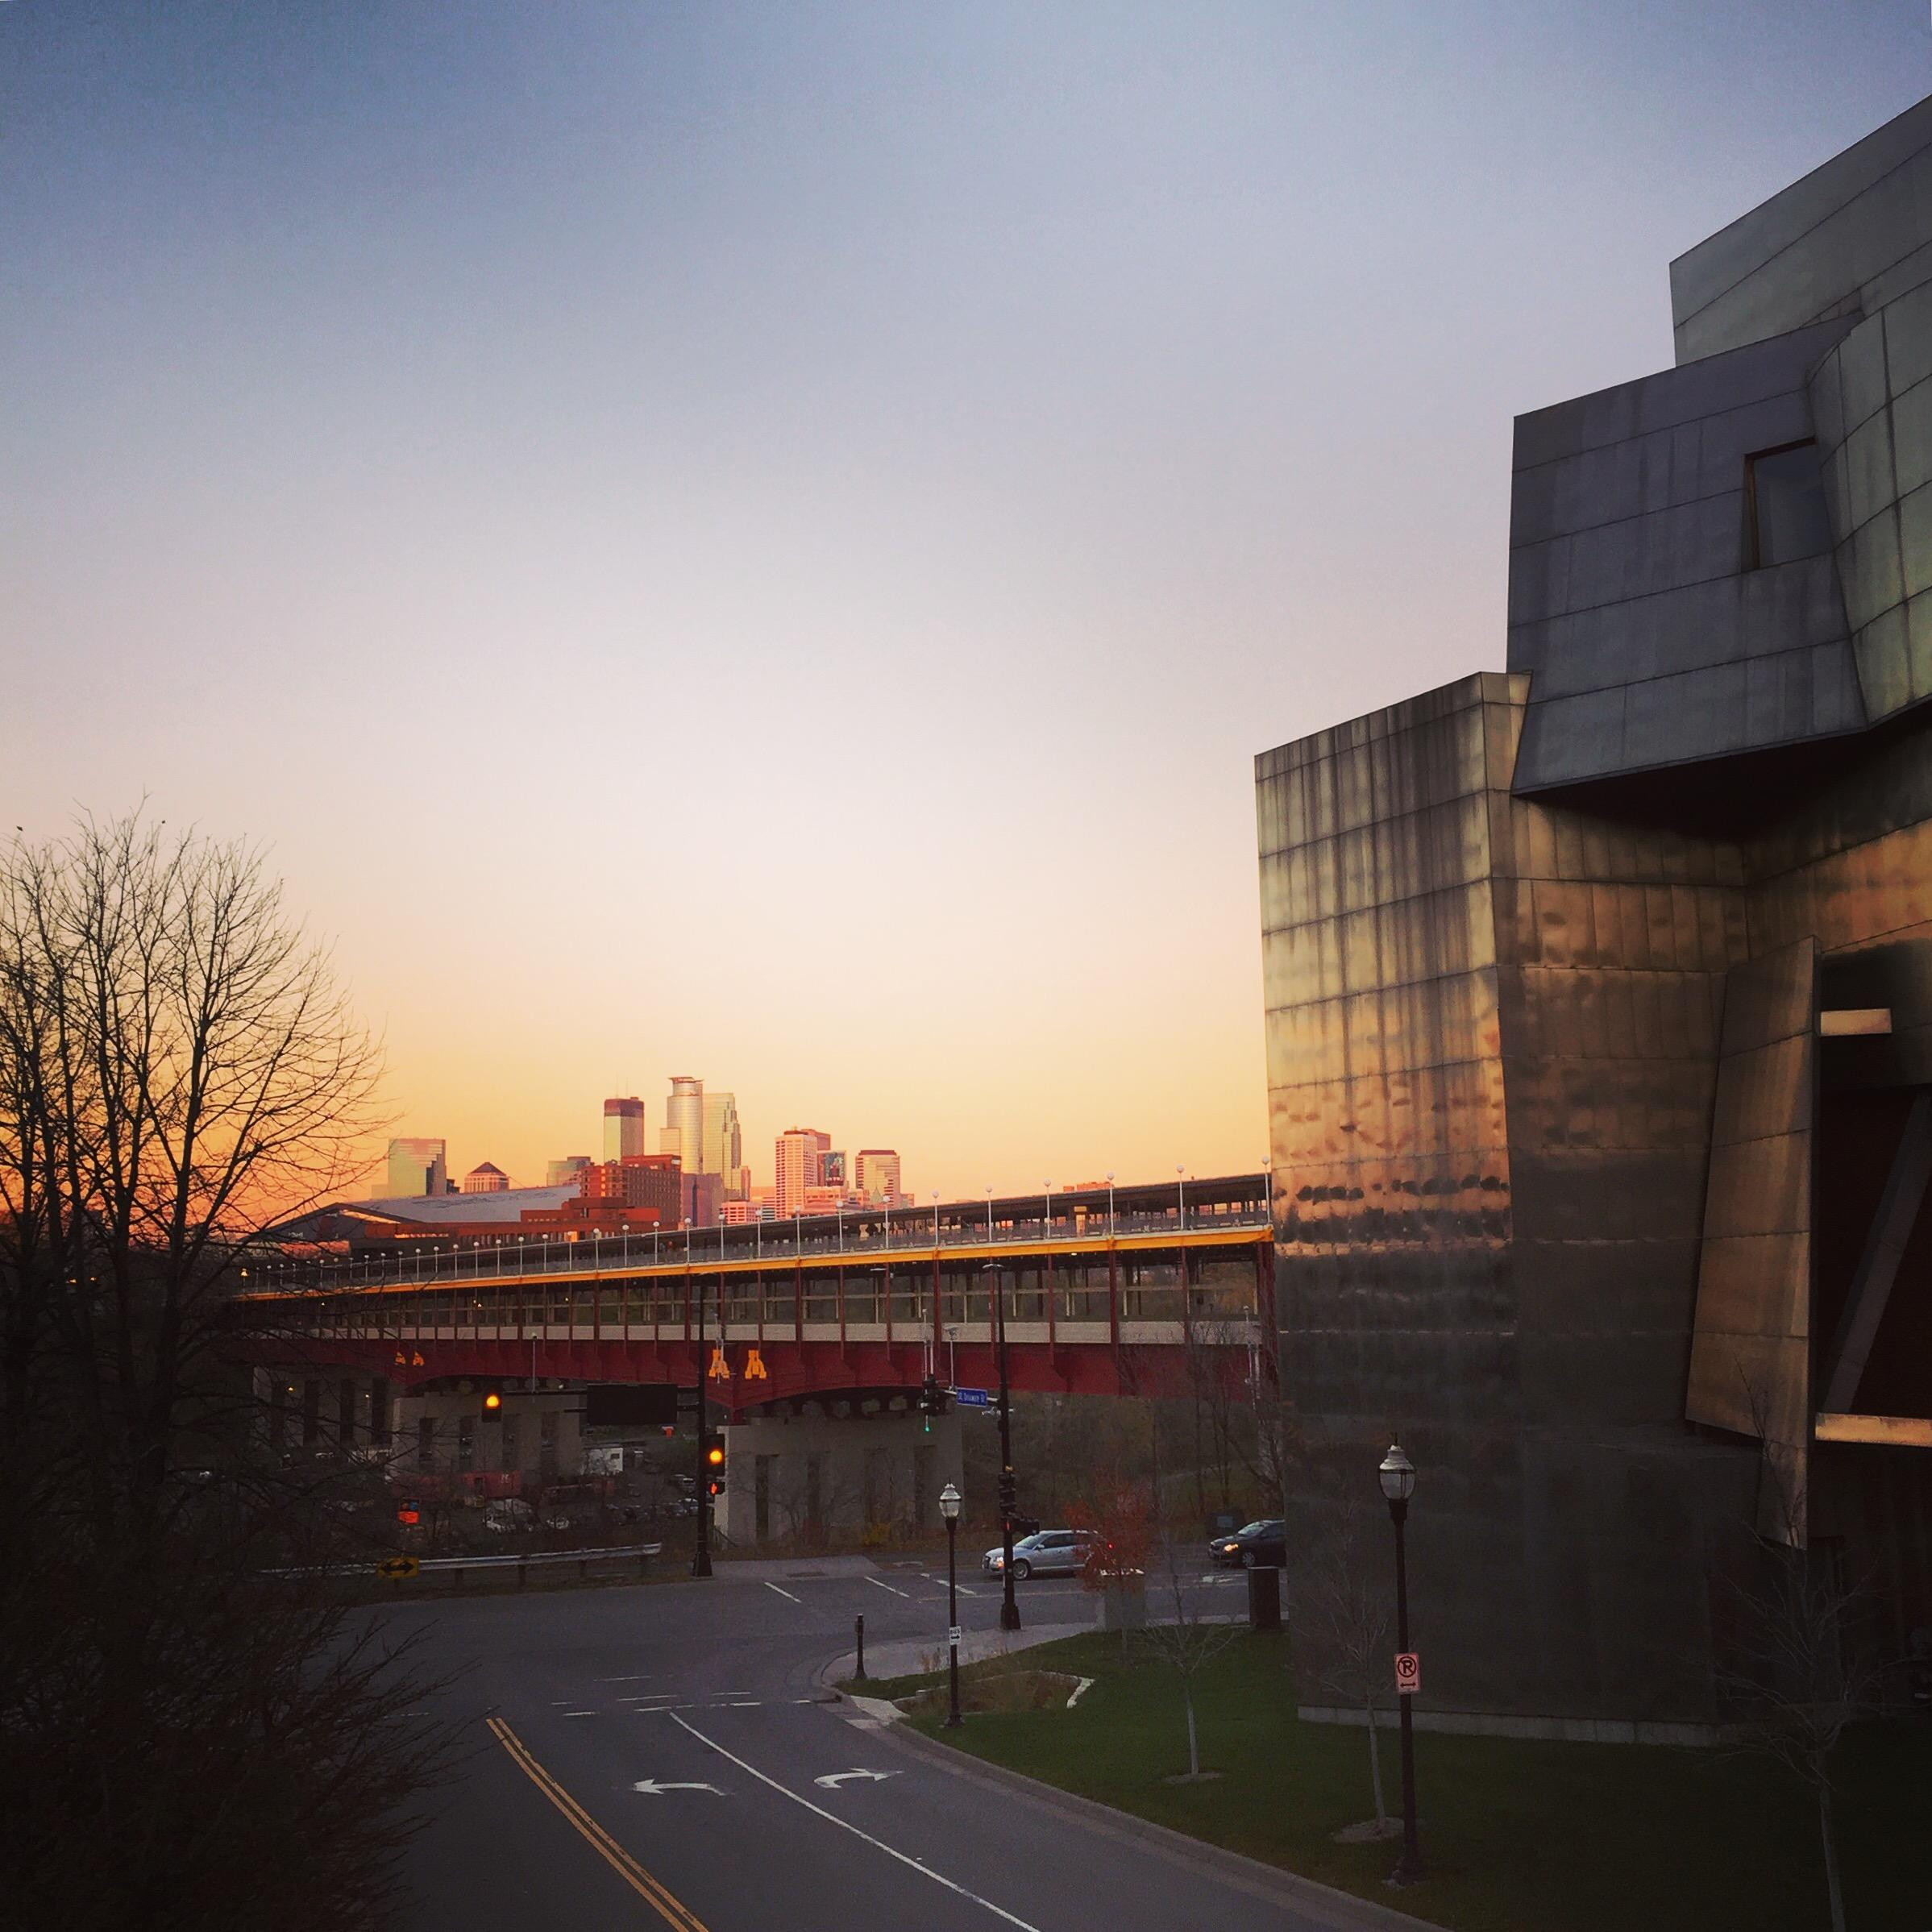 Weisman Art Museum at sunrise